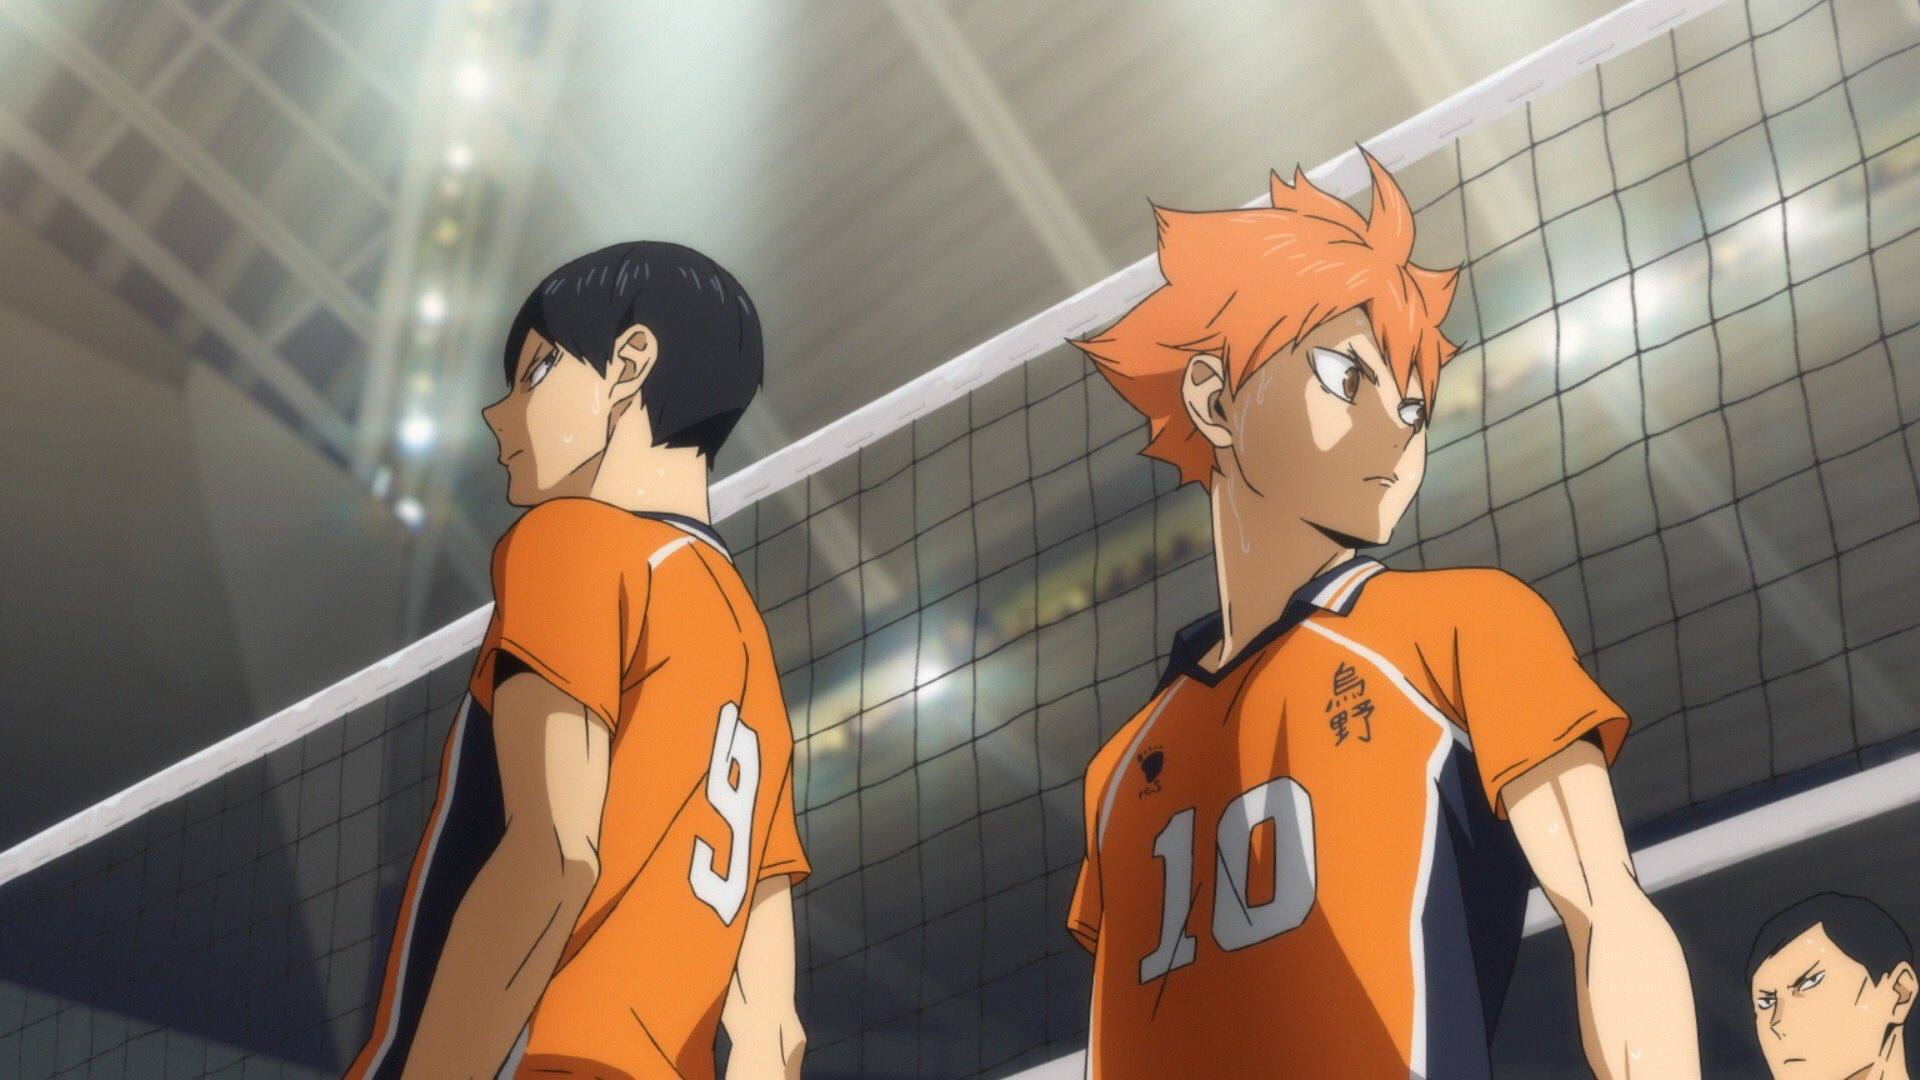 Haikyuu!! Season 4 Part 2 Release Schedule, Haikyuu!!: To The Top Cour 2  Episode 1-12 Release Date and Timing - Anime News And Facts